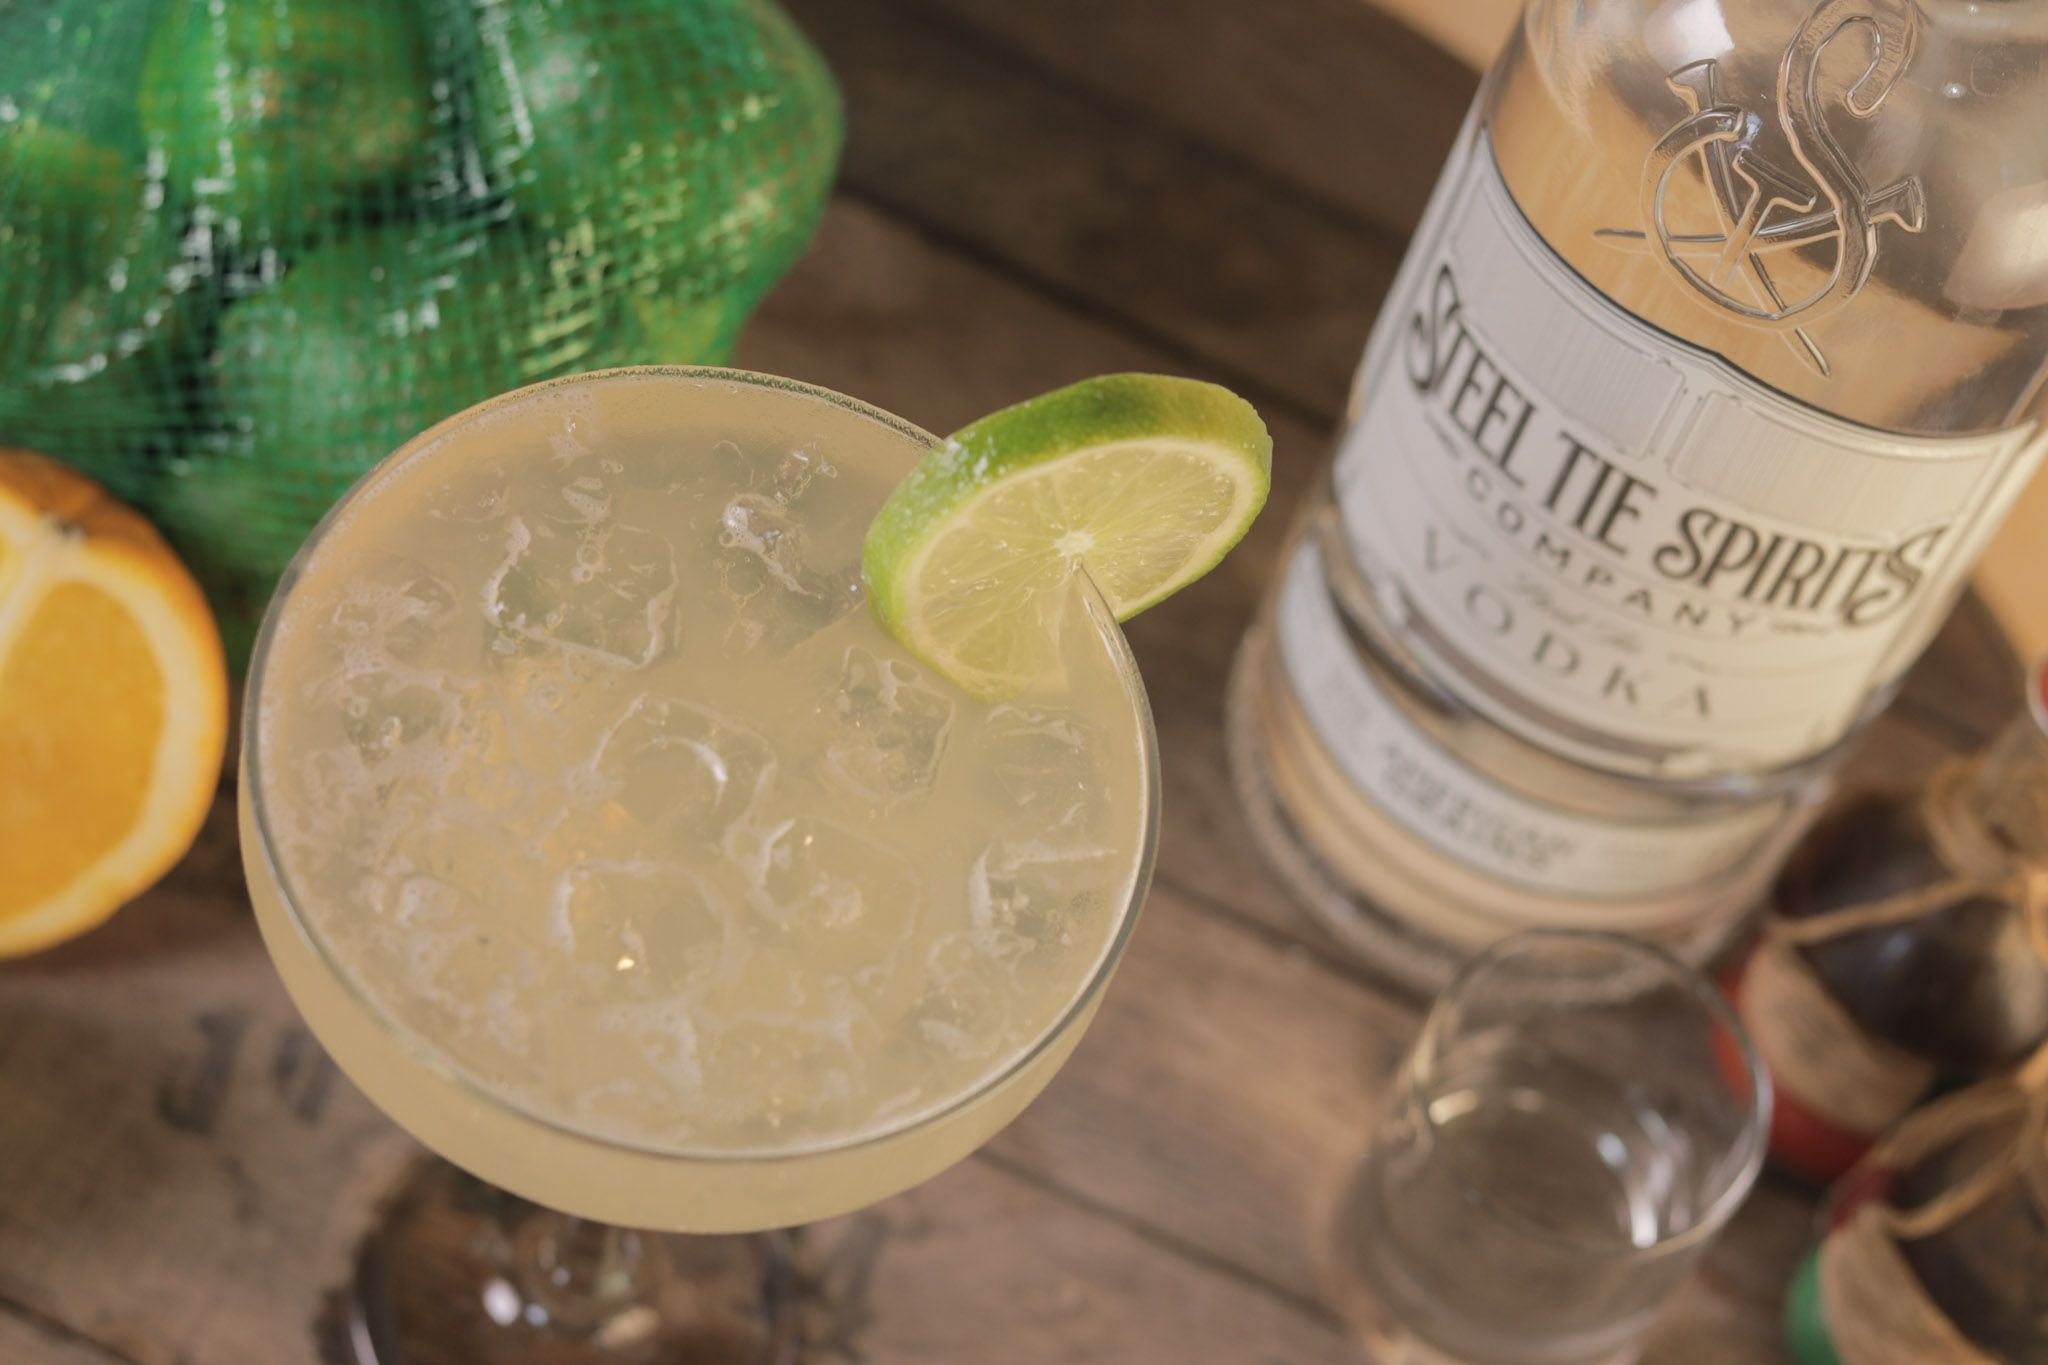 A margarita glass filled with vodka, lime and lemon juices sitting on a wooden surface